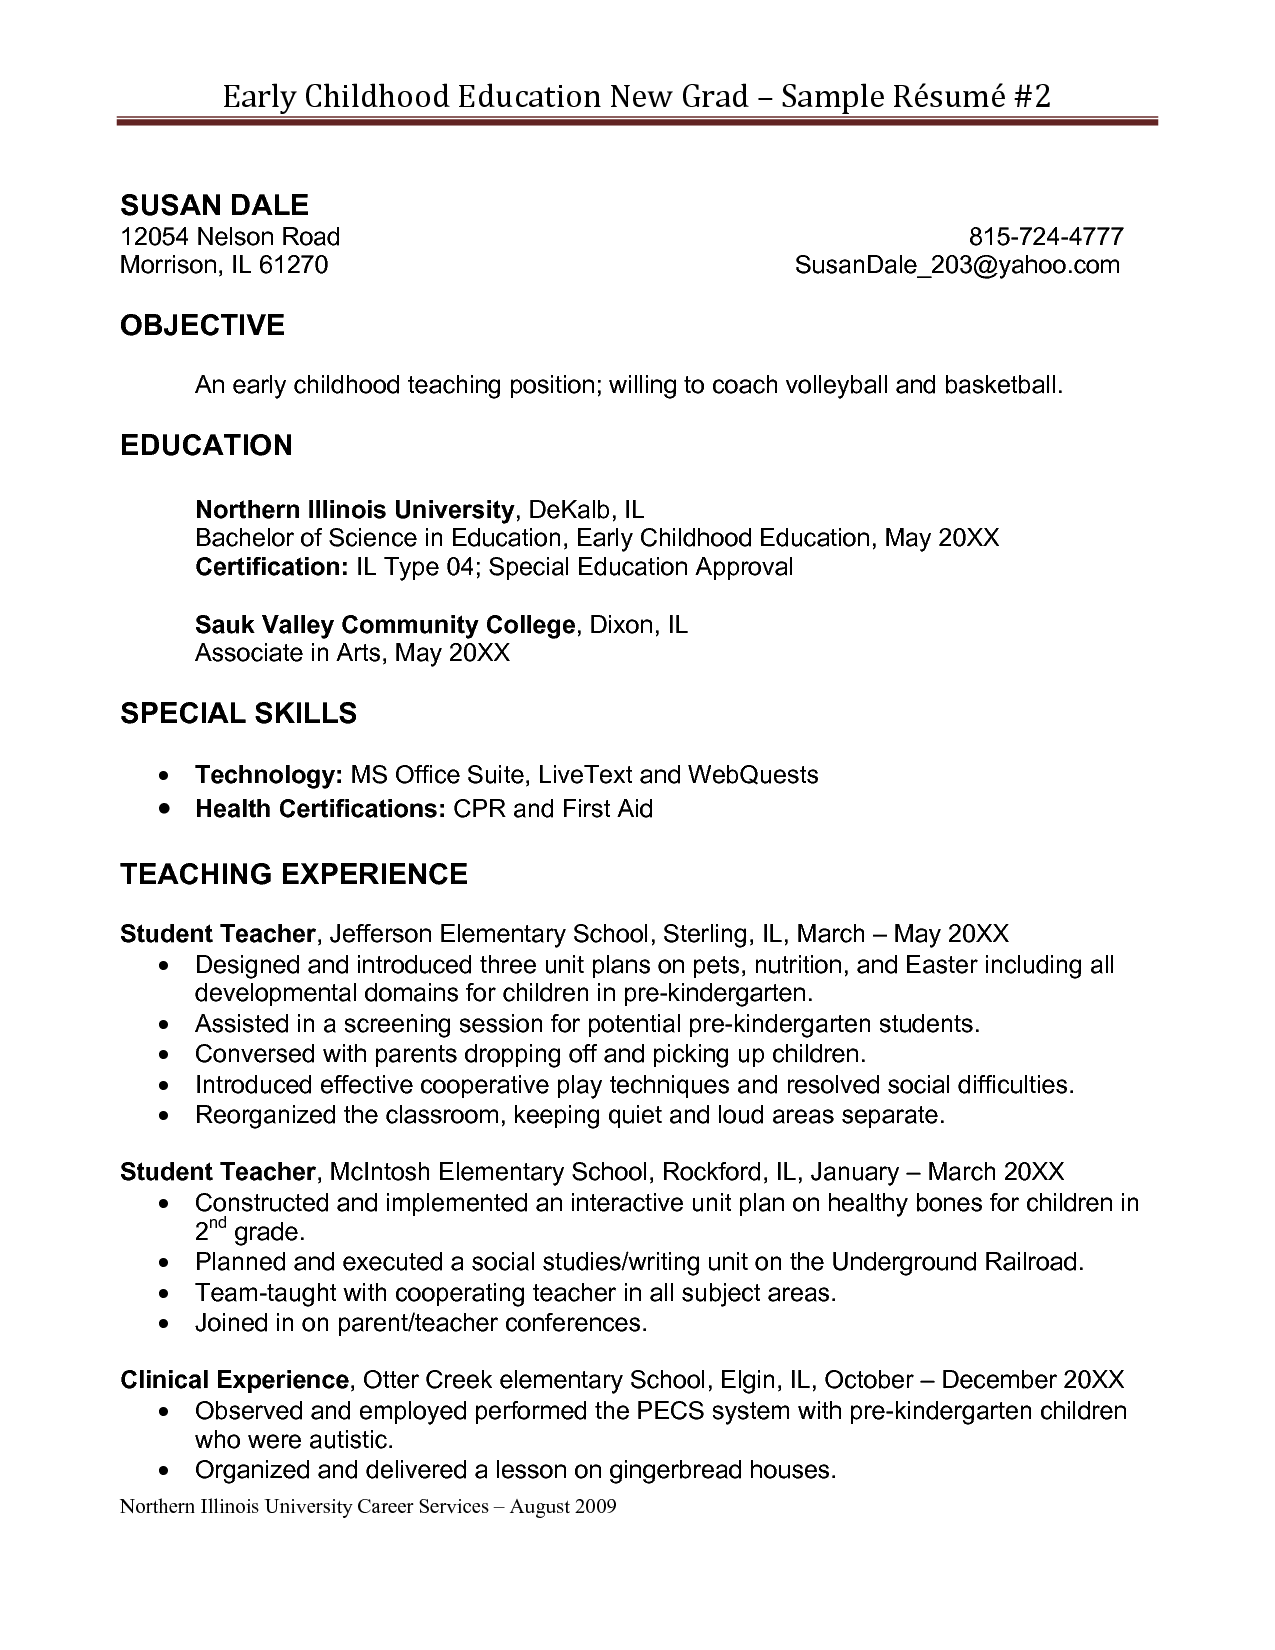 Early Childhood Education Resume Objective  College